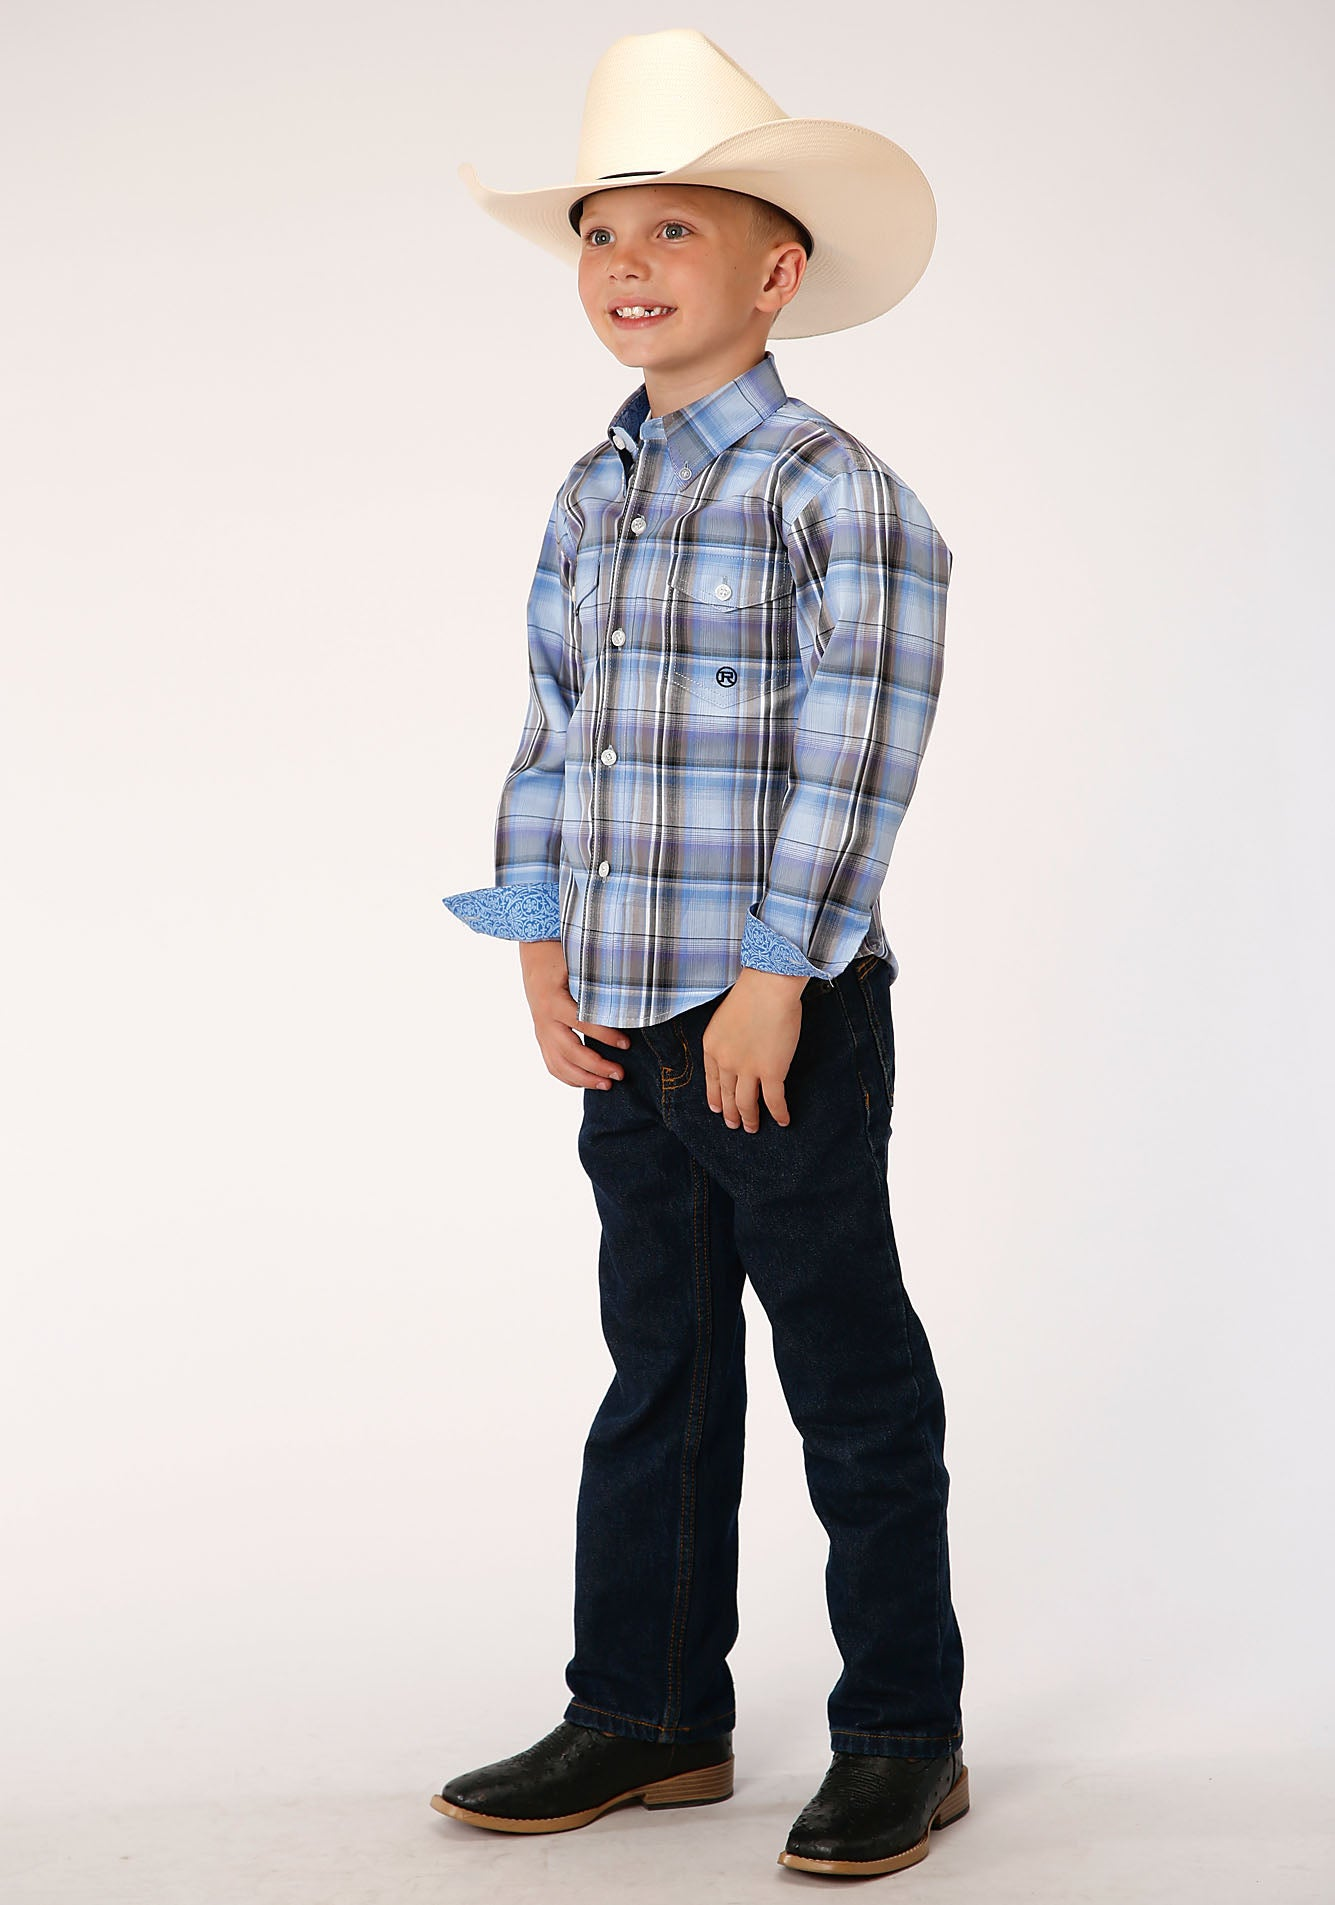 ROPER BOYS BLUE 00019 COOL BREEZE PLAID BOYS AMARILLO COLLECTION- DUSK LONG SLEEVE